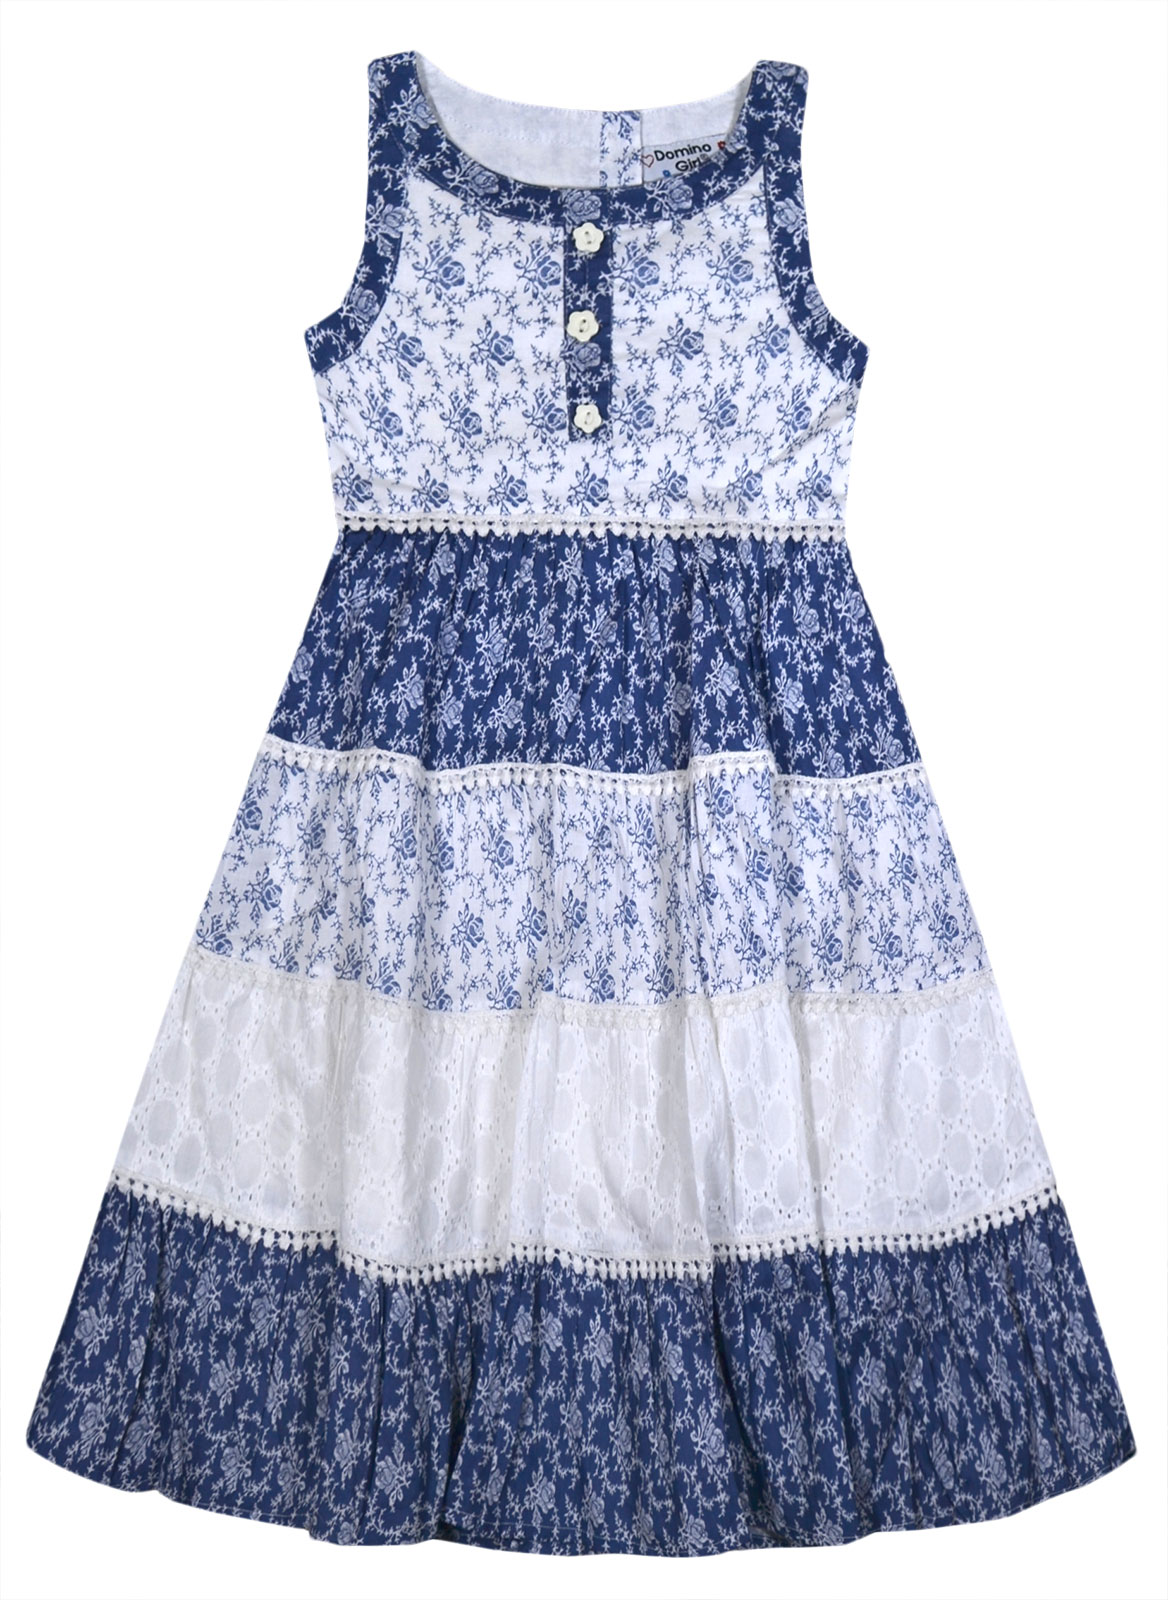 Girls Summer Dress 7% Cotton Sleeveless Floral Party Dresses Age